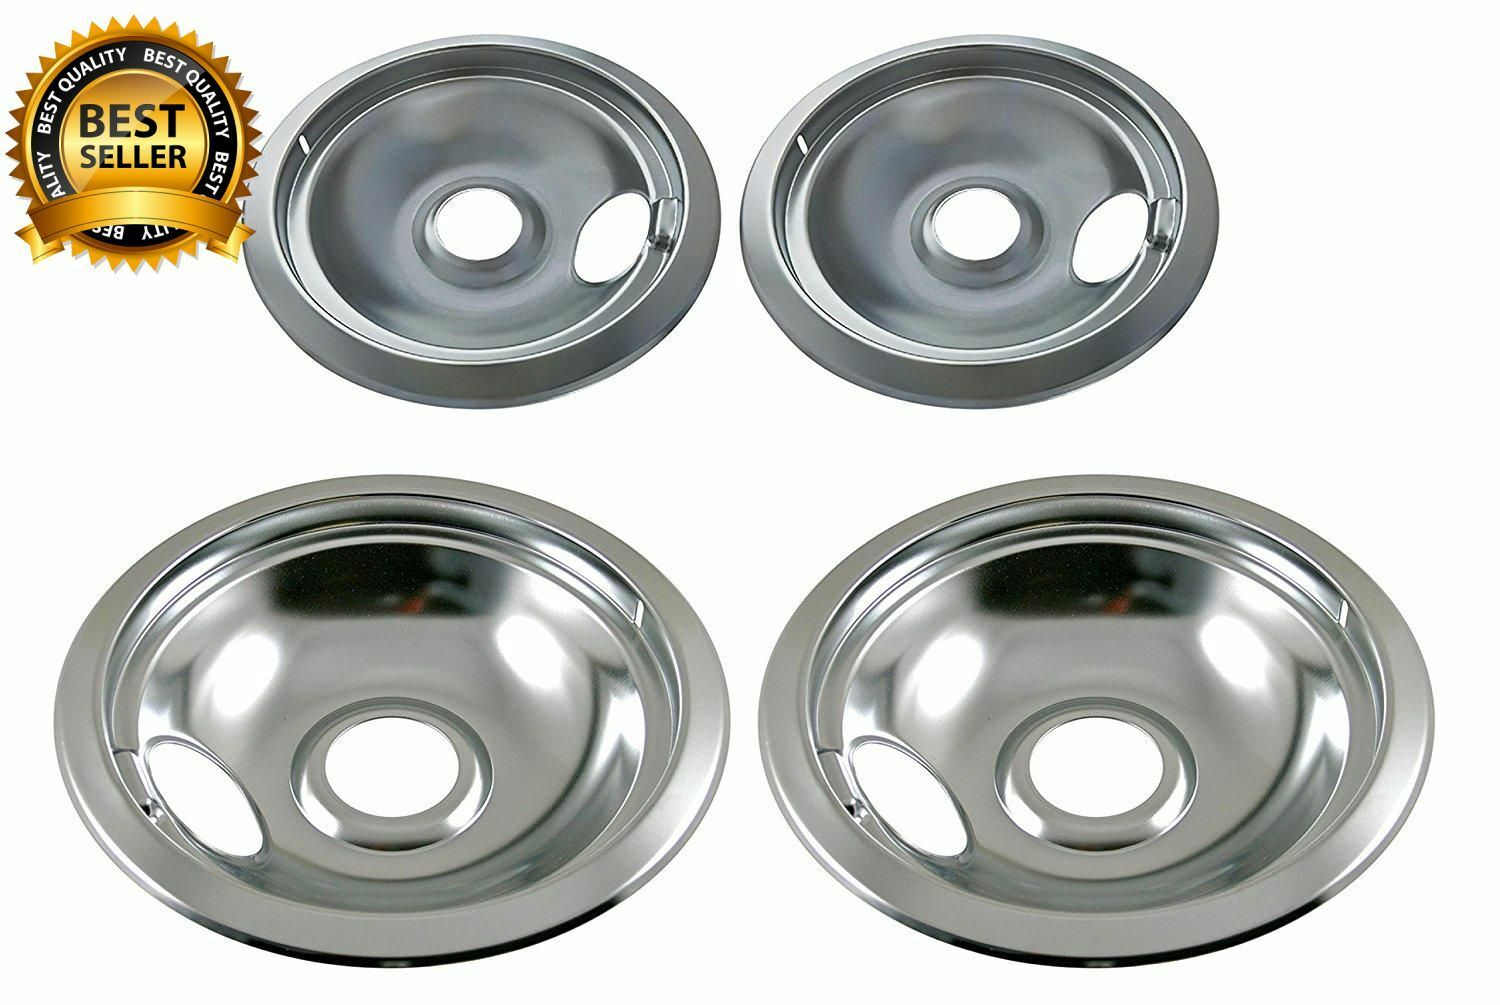 Chrome Drip Pan Set Replacement Stove Drips Pans Electric